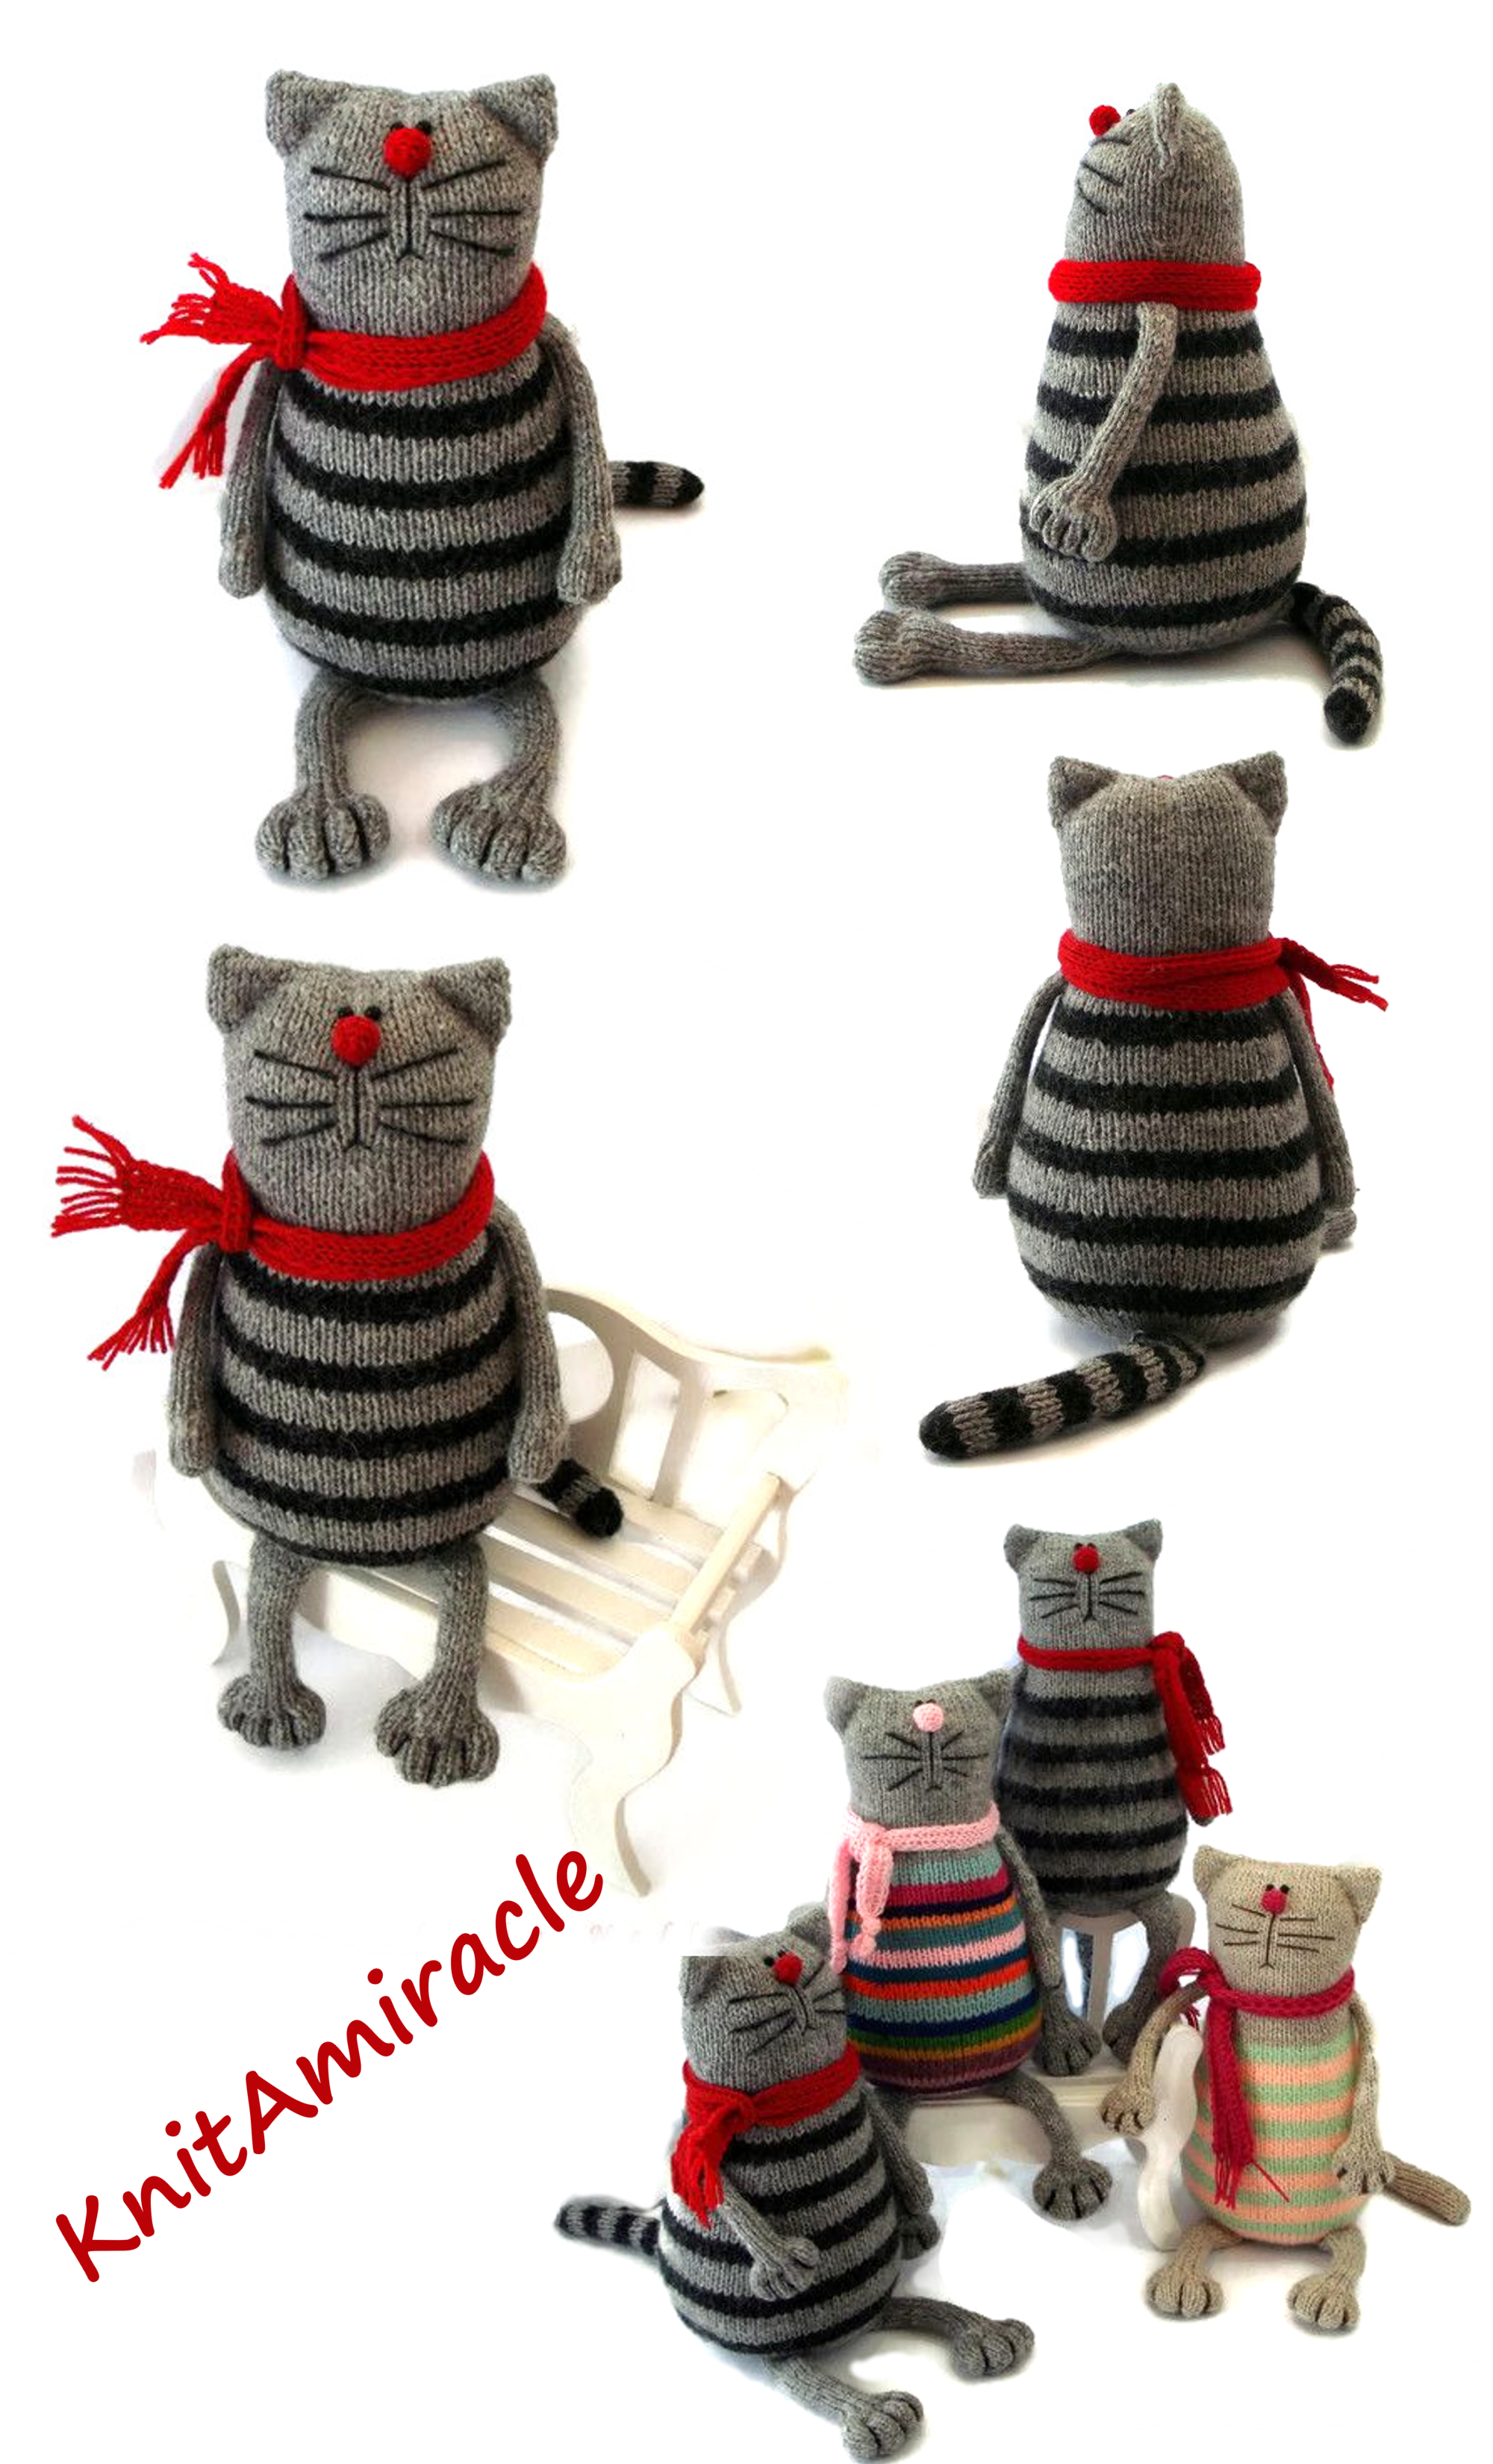 Toy cat knitting pattern PDF Knitted animal pattern Stuffed kitty making DIY toy Pablo the Serious Cat #knittedtoys